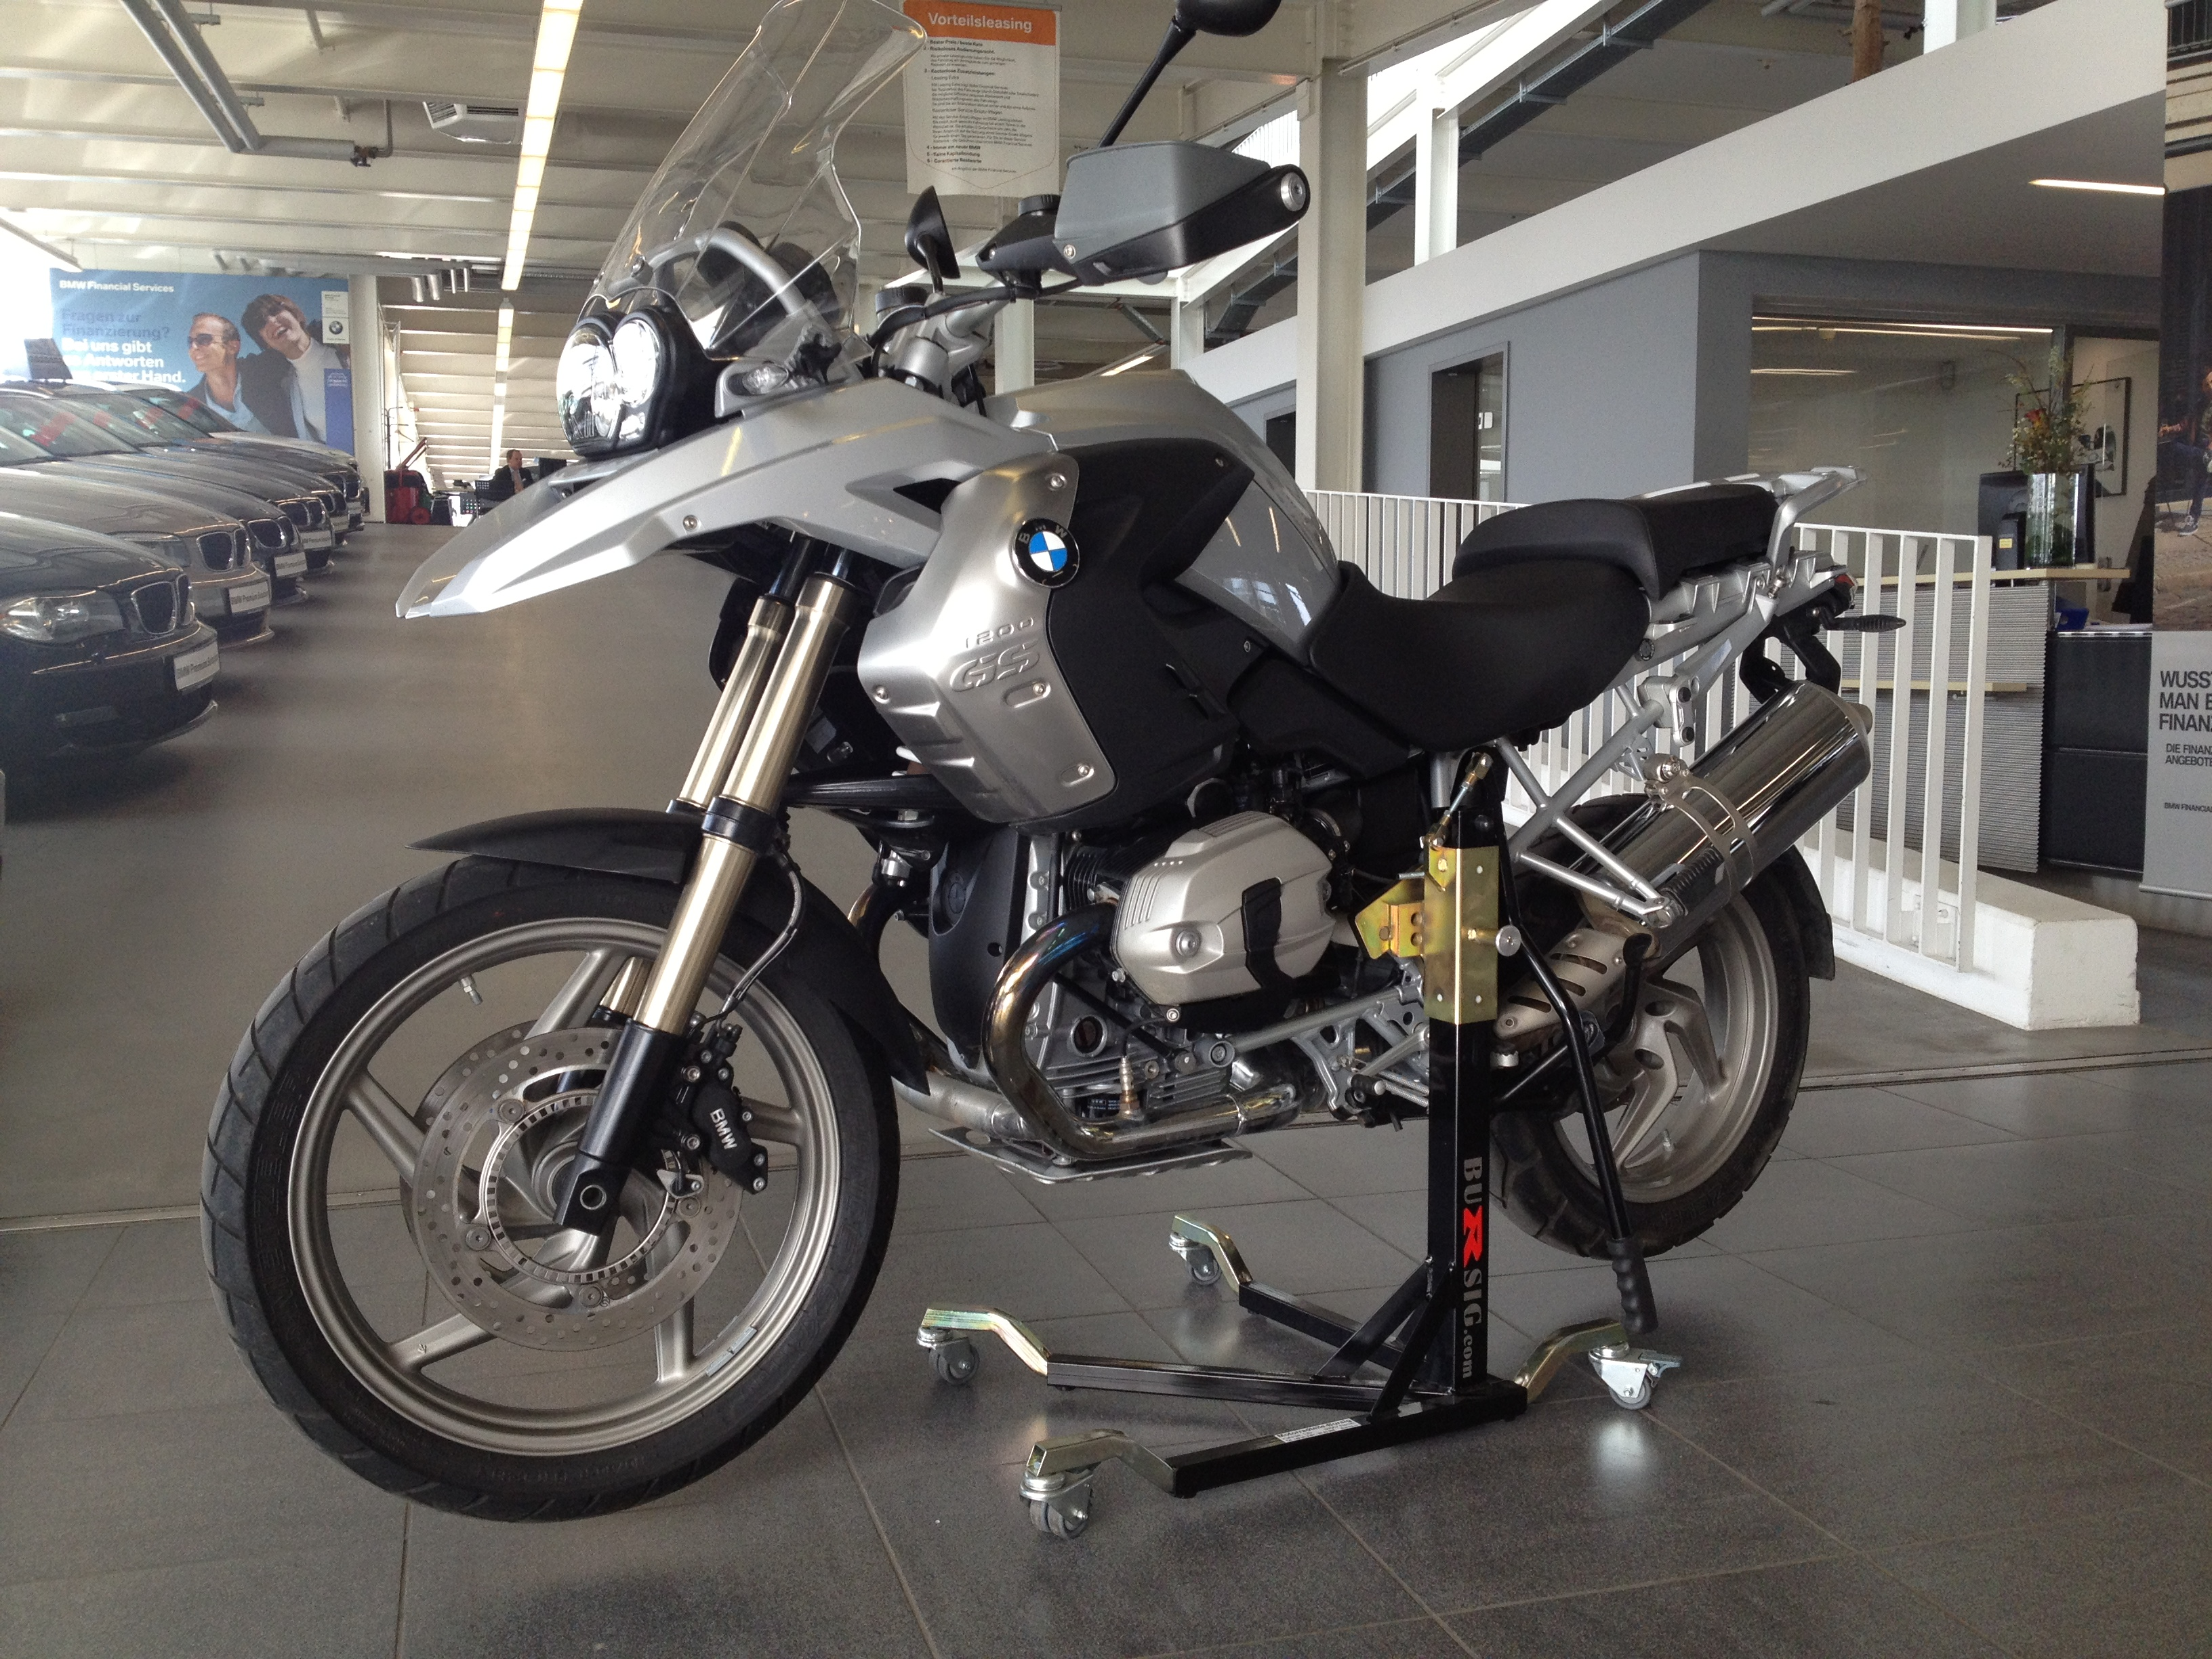 bursig-bmw-r1200gs-2.jpg